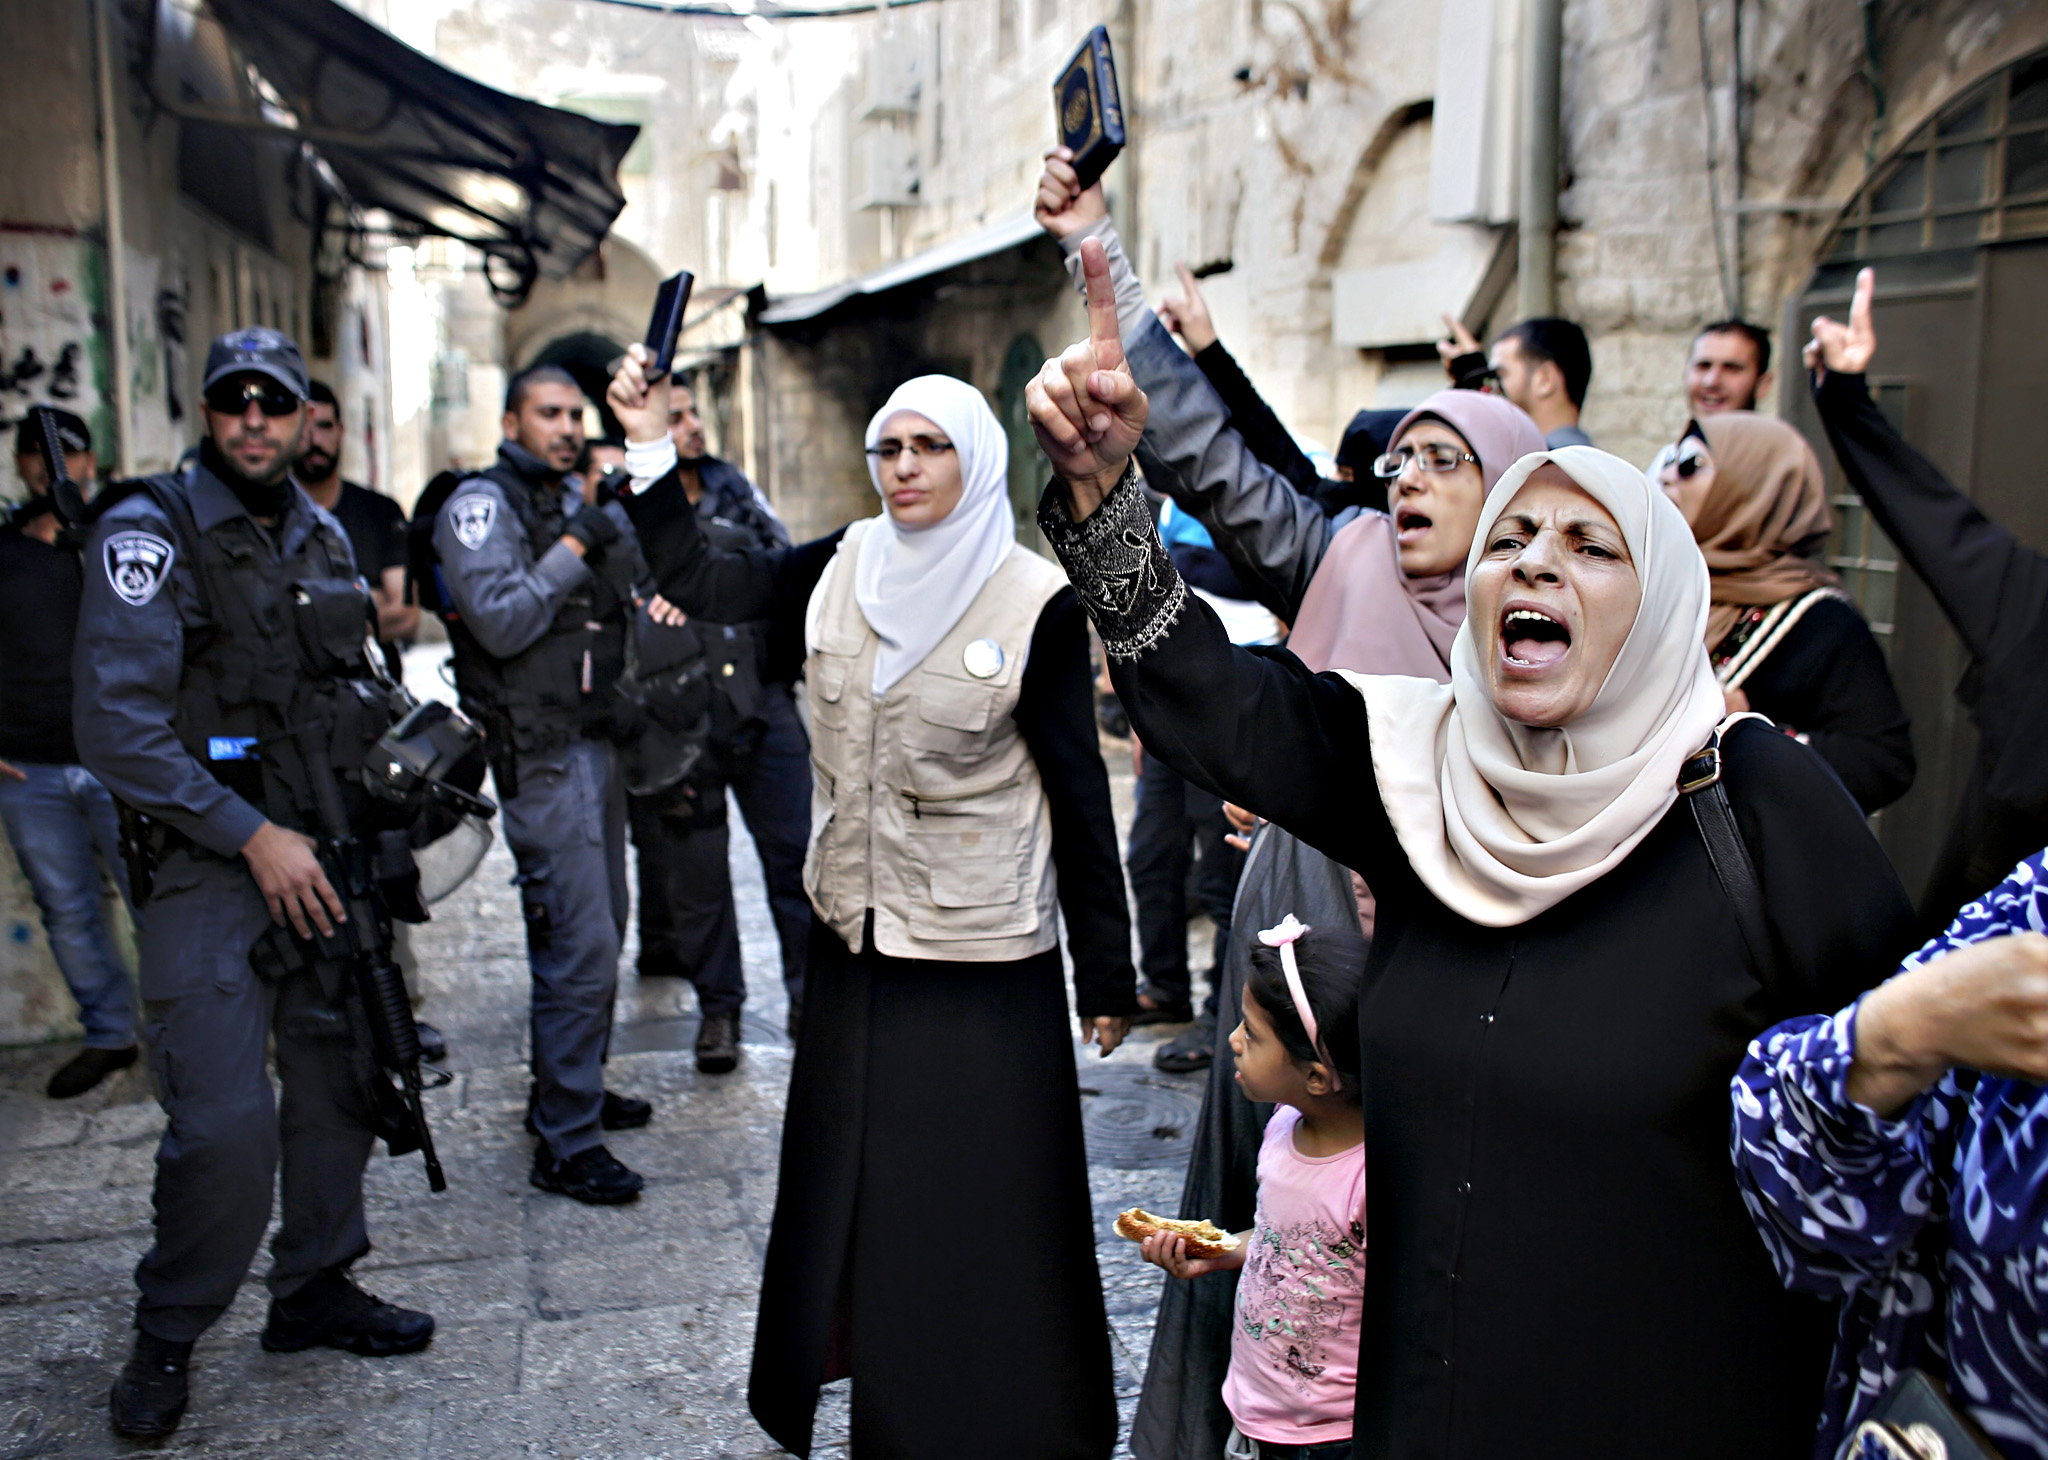 Palestinian women from the so-called Murrabit group raise copies of the Koran, Islam's holy book, and shout slogans in front of Israeli security forces during a protest against Jewish groups visiting the Al-Aqsa mosque compound in Jerusalems old city on September 22, 2015. Israel said thousands of police would be deployed in Jerusalem ahead of the Yom Kippur and Eid al-Adha holidays after three days of clashes rocked the Al-Aqsa mosque compound.